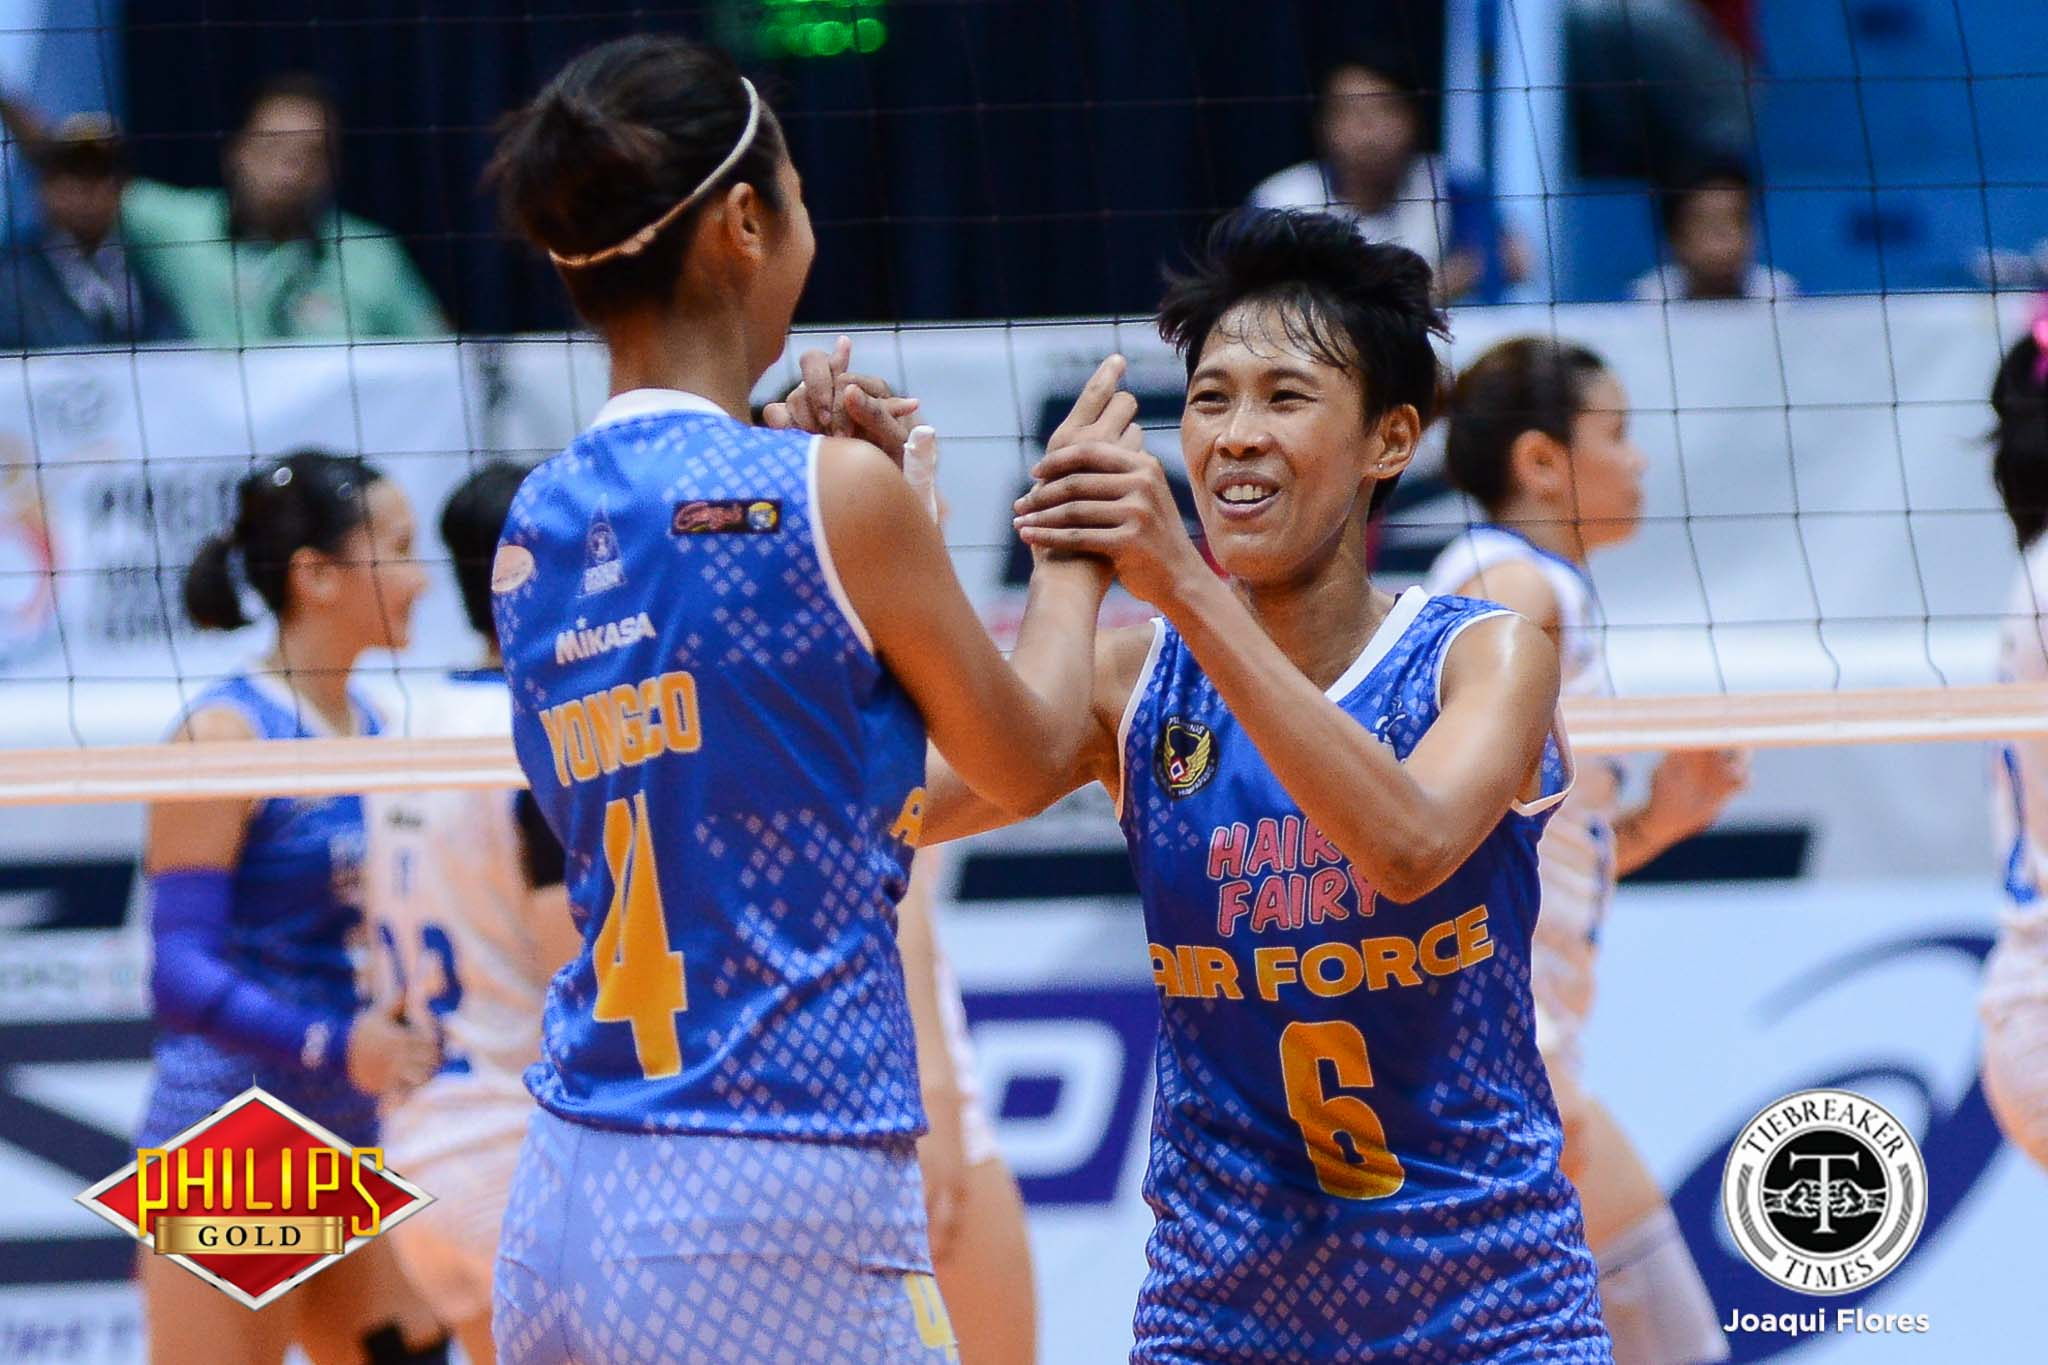 Philippine Sports News - Tiebreaker Times Hair Fairy-Air Force stuns Pocari Sweat to take 1-0 lead News PVL Volleyball  Wendy Semana Rico De Guzman Pocari Sweat Lady Warriors Myla Pablo May Ann Pantino Mary Ann Balmaceda Jocemer Tapic Jasper Jimenez Air Force Jet Spikers 2017 PVL Women's Open Conference 2017 PVL Season